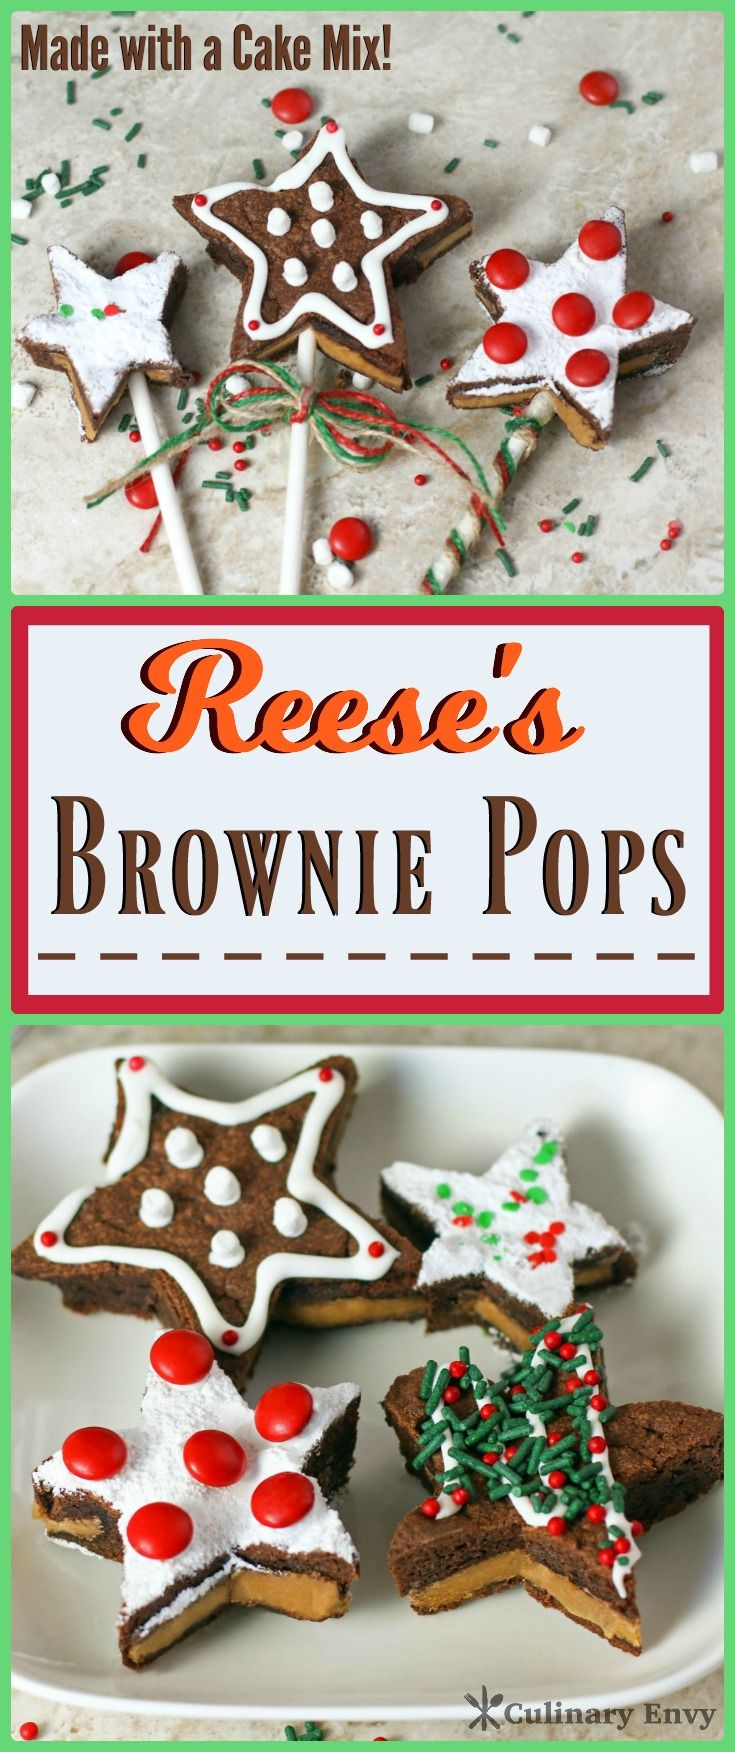 Reese's Brownie Pops are peanut butter cups stuffed inside soft, chewy, chocolaty brownies made with a cake mix.  Only 4 simple ingredients to make your family swoon!  Click to read more or Pin & Save for later!